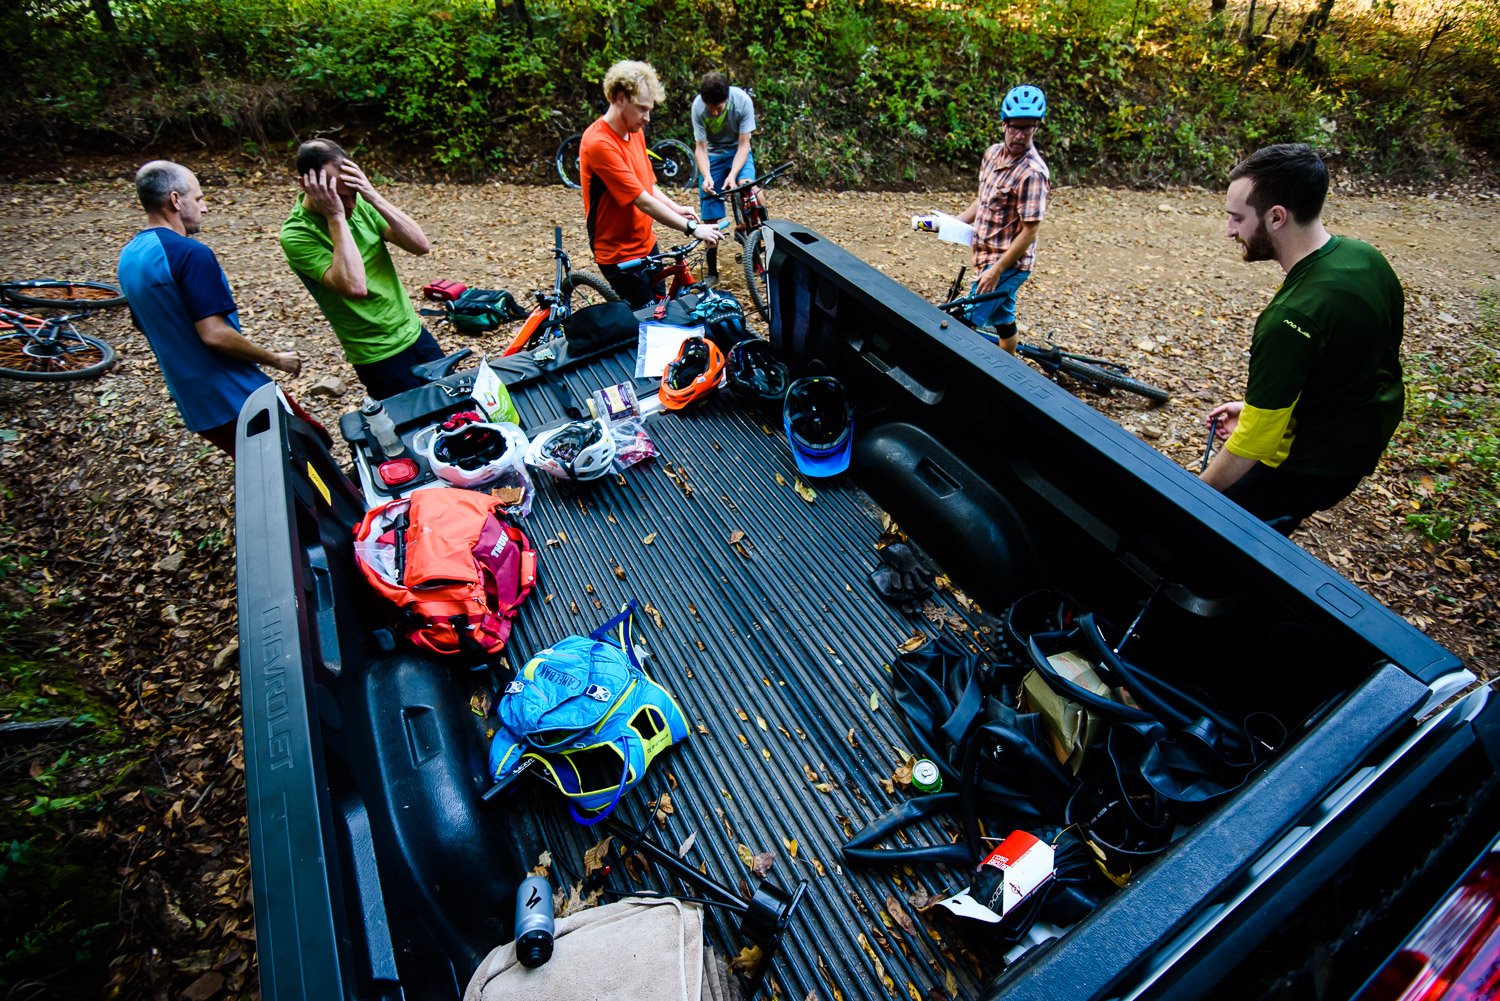 Smashing out one test loop after another can be tiring business, so it helps to have a trusty Chevy pickup at the trailhead for snacks and sustenance while completing forms and swapping out bikes.